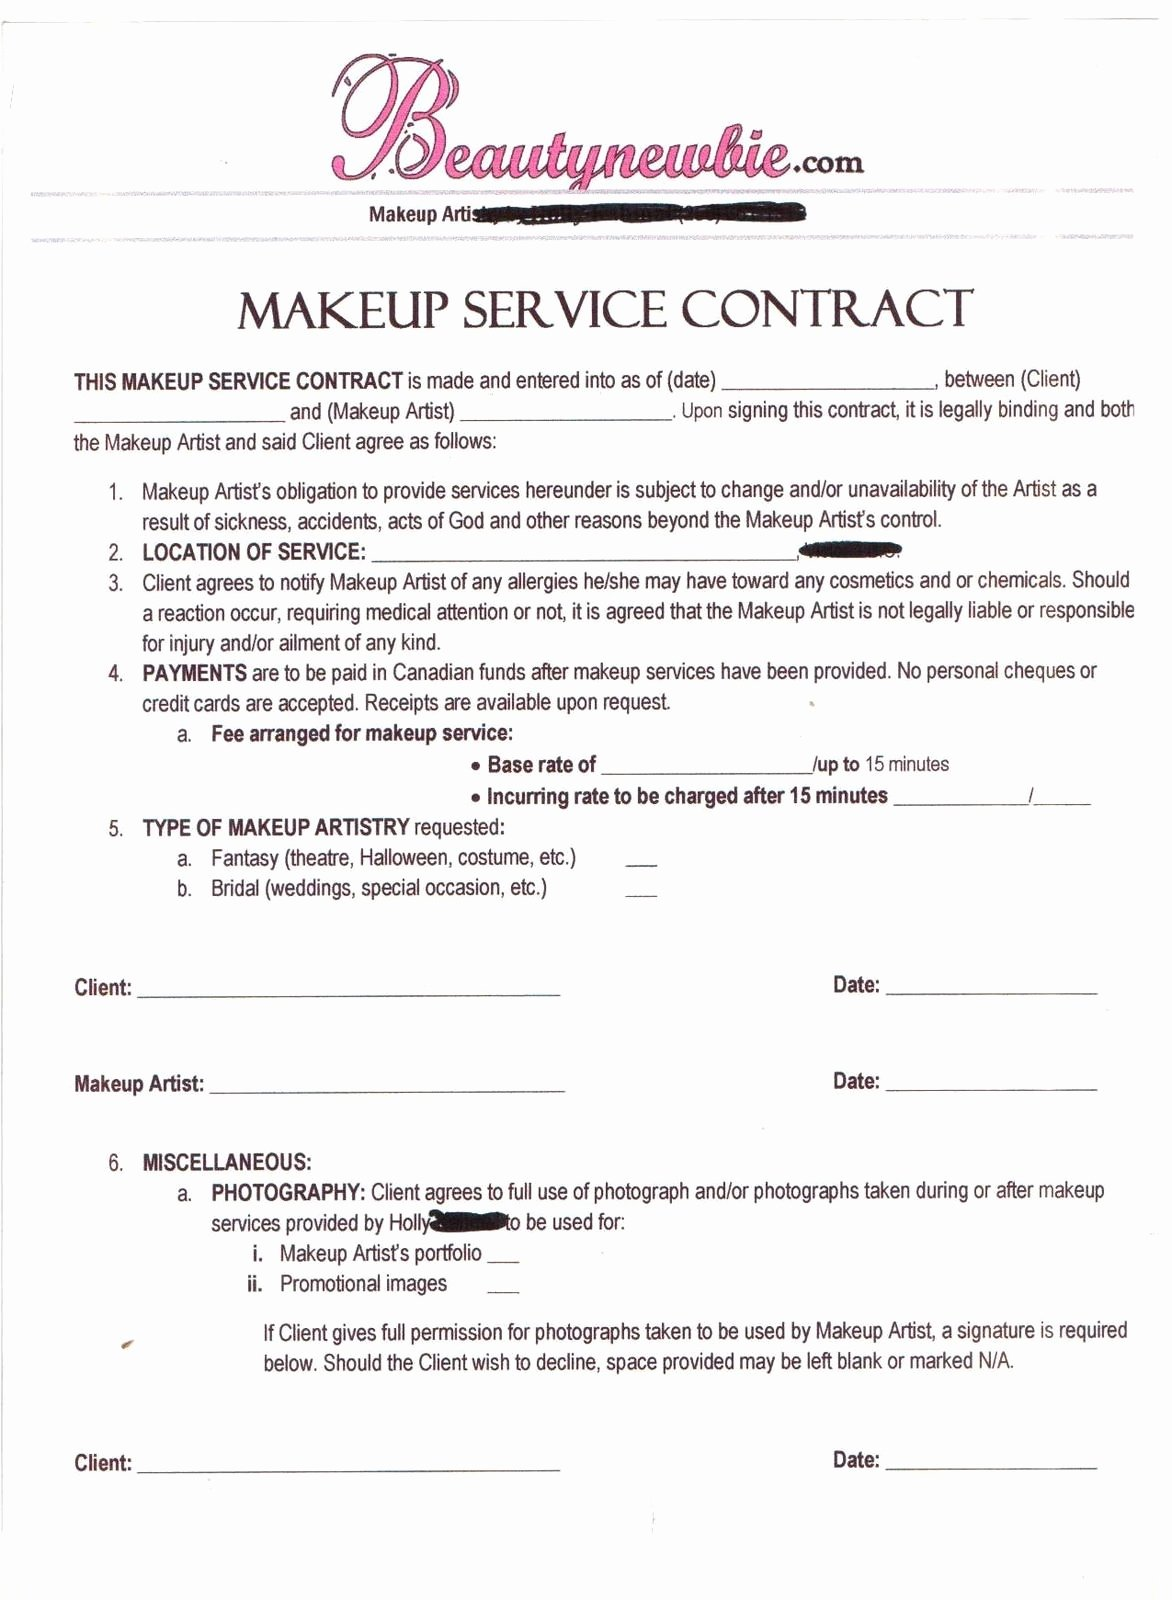 Hair Stylist Contract for Wedding Awesome Contract Makeup Artist